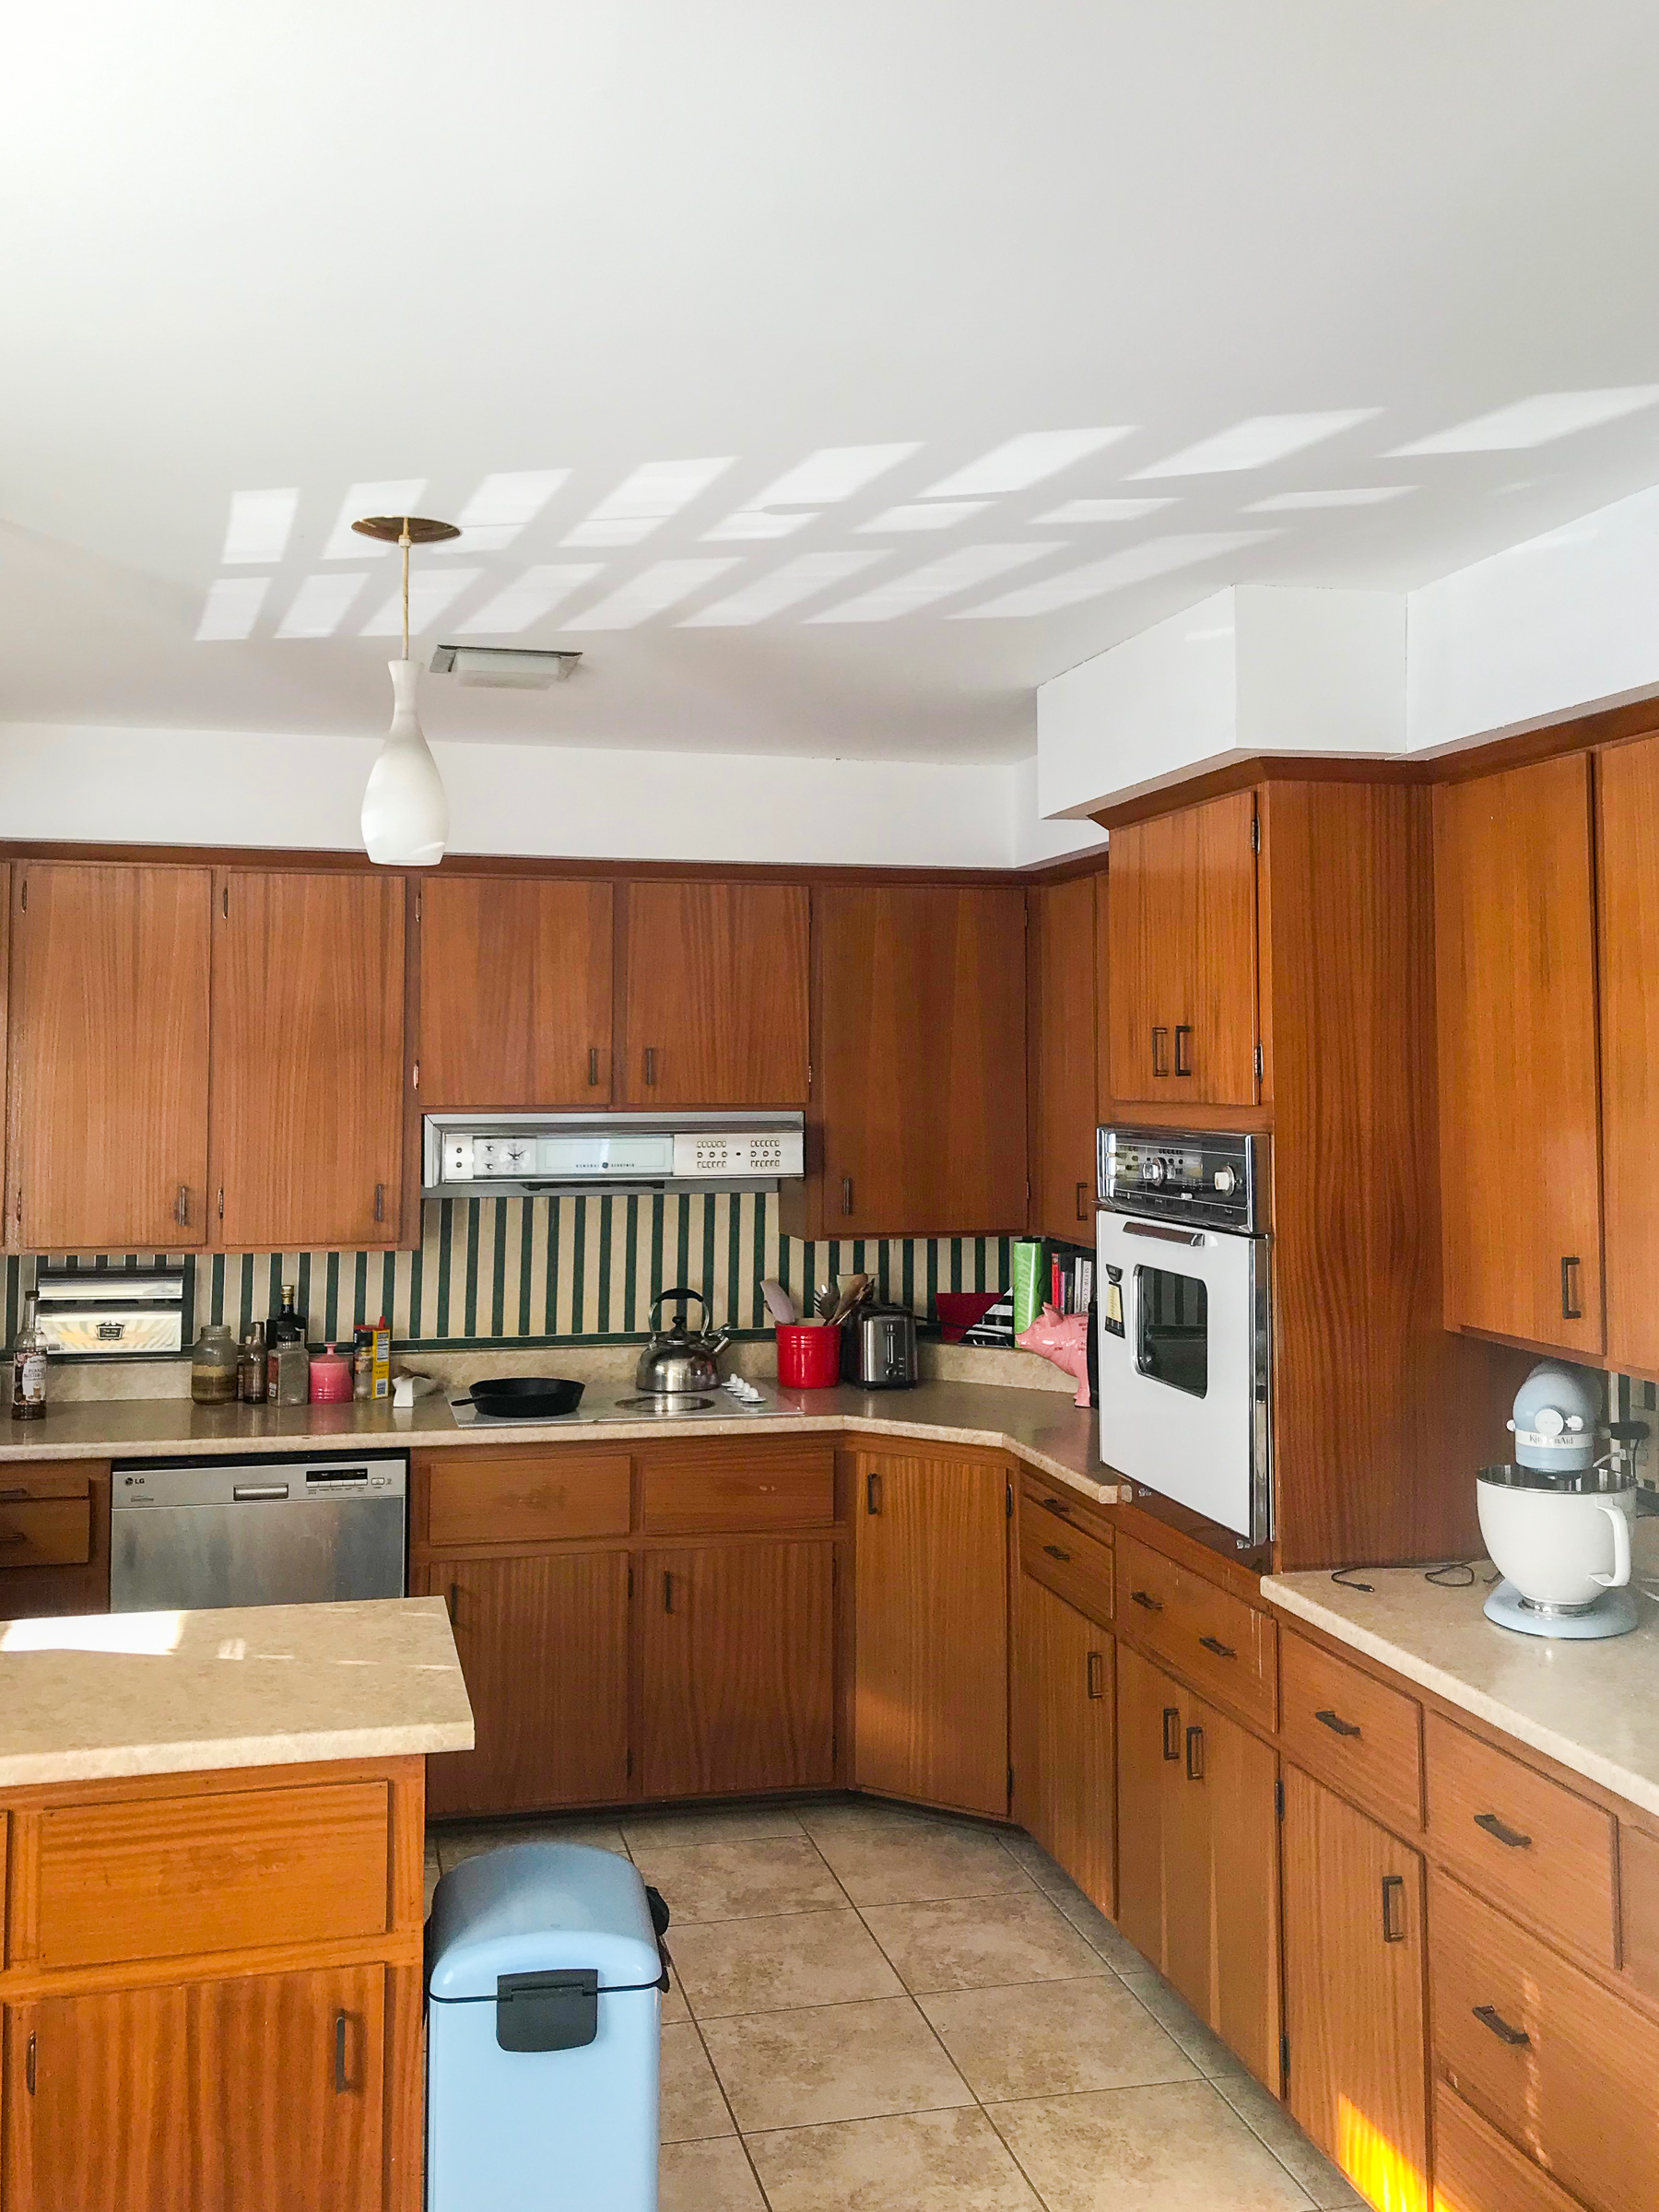 For the spring 2019 edition of the ORC, we're sharing our retro glam kitchen renovation plans - everything from checkerboard floors, to countertops and more.